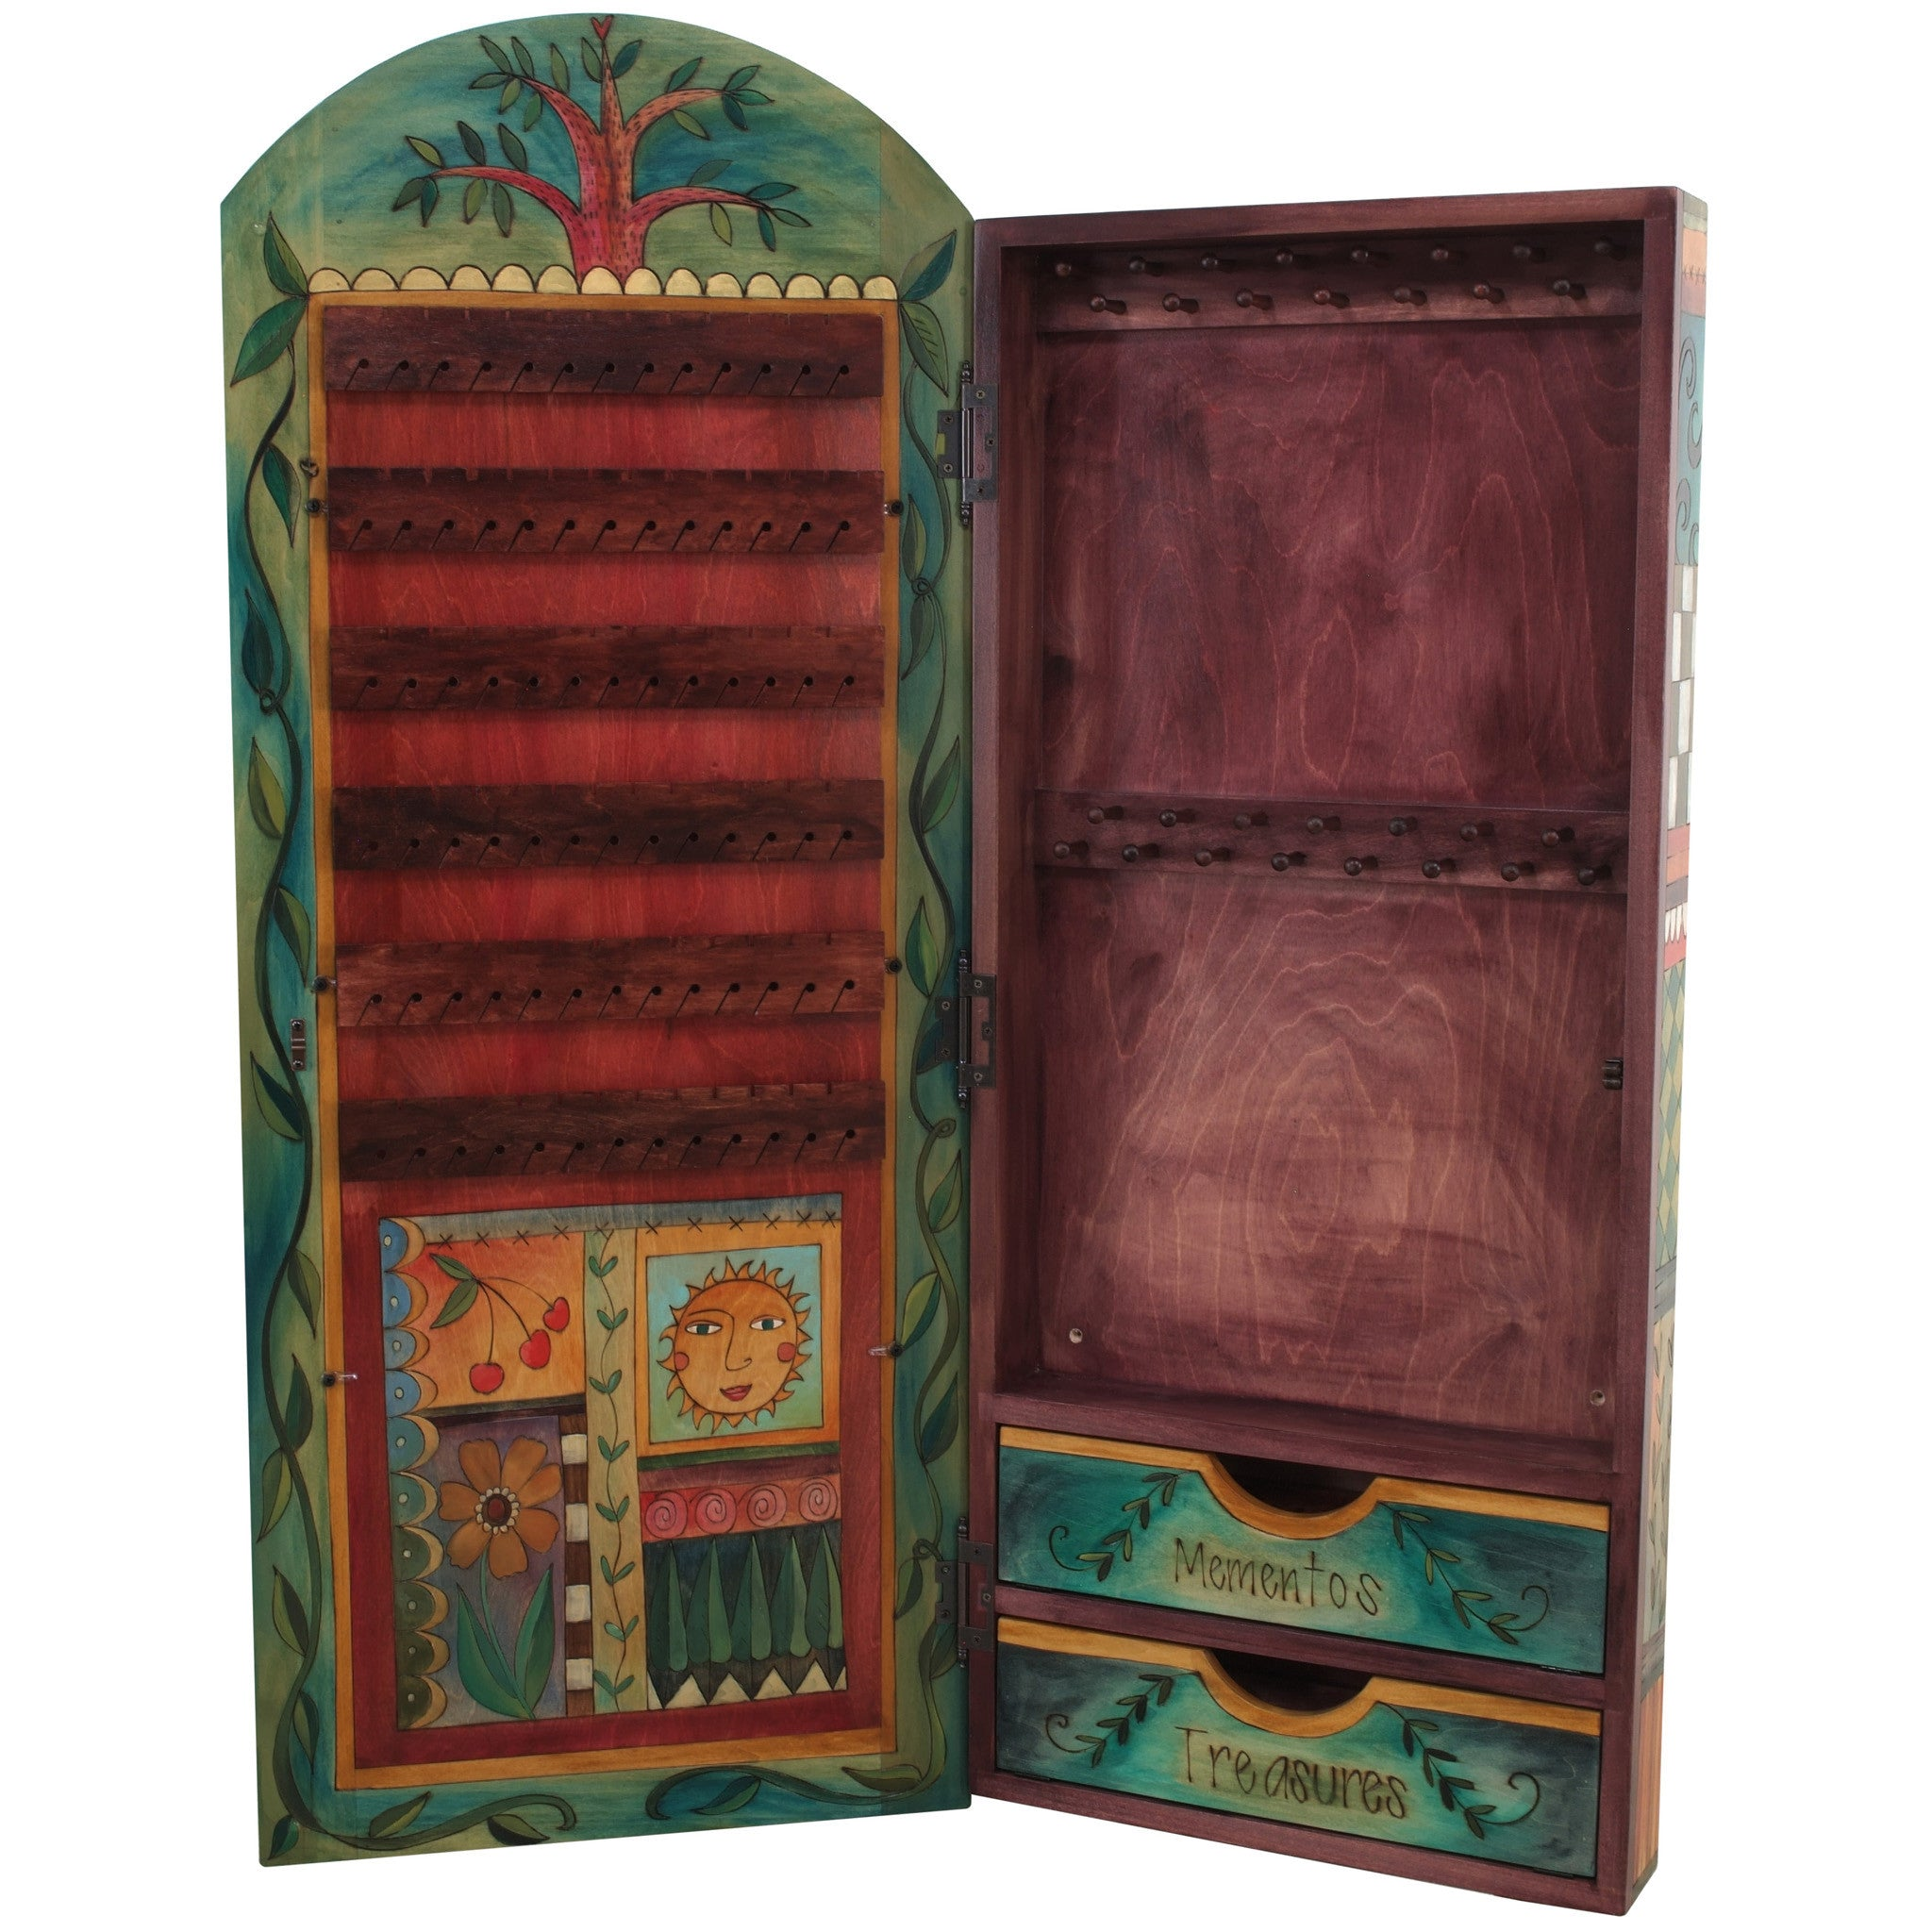 Wall Mount Jewelry Cabinet By Sticks Cpd006 S310477 Artistic Artisan Designer Cabinets Sweetheart Gallery Contemporary Craft Gallery Fine American Craft Art Design Handmade Home Personal Accessories